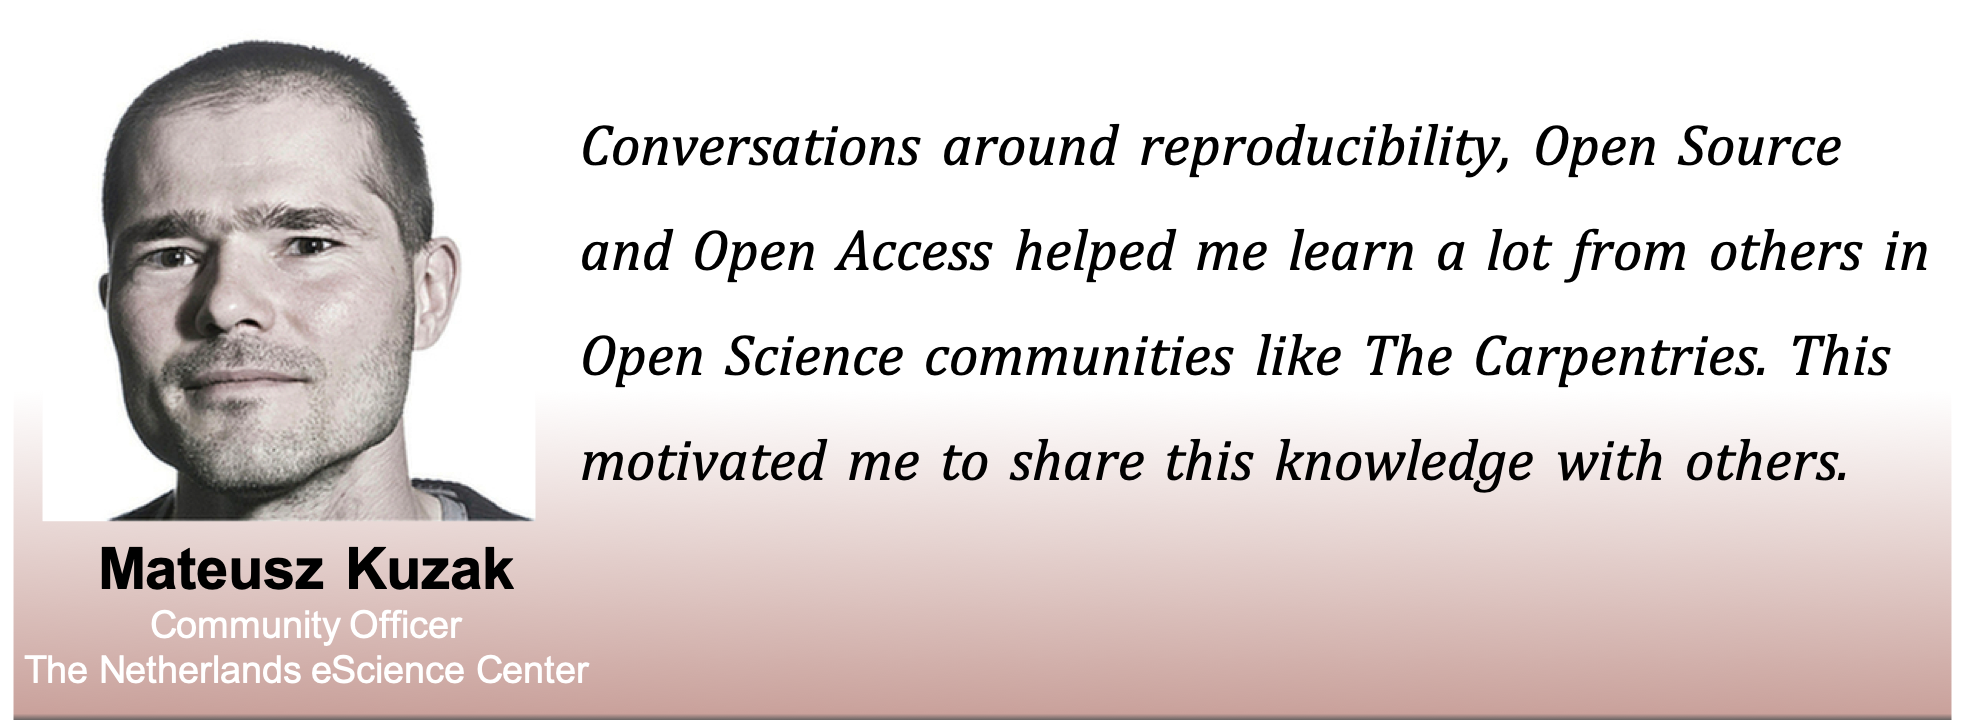 Picture of Mateusz with the caption: Conversations around reproducibility, open source, and open access helped me learn a lot from others in open science communities like The Carpentries. This motivated me to share this knowledge with others.